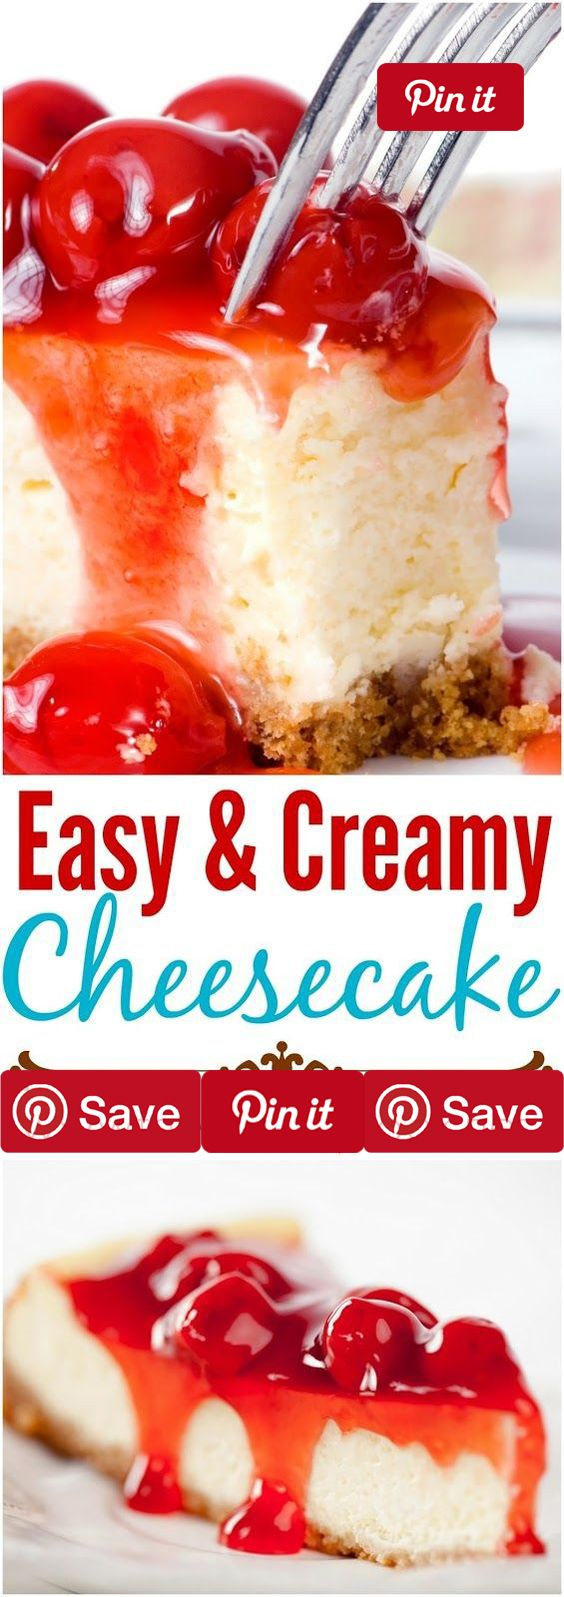 Easy and Creamy Cheesecake 1.5 hrs to make serves 6 This is one of the easiest cheesecakes you will ever make. Cross my heart. And forget about all those cheesecake recipes from the past where diys Ingredients Vegetarian Refrigerated 2 Eggs Condiments tbsp Lemon juice Baking & Spices 19 tbsp Sugar tbsp Vanilla extract Snacks 1 cup Graham cracker crumbs Dairy 1/3 cup Butter 2 8 oz blocks Cream cheese 3 tbsp Sour cream